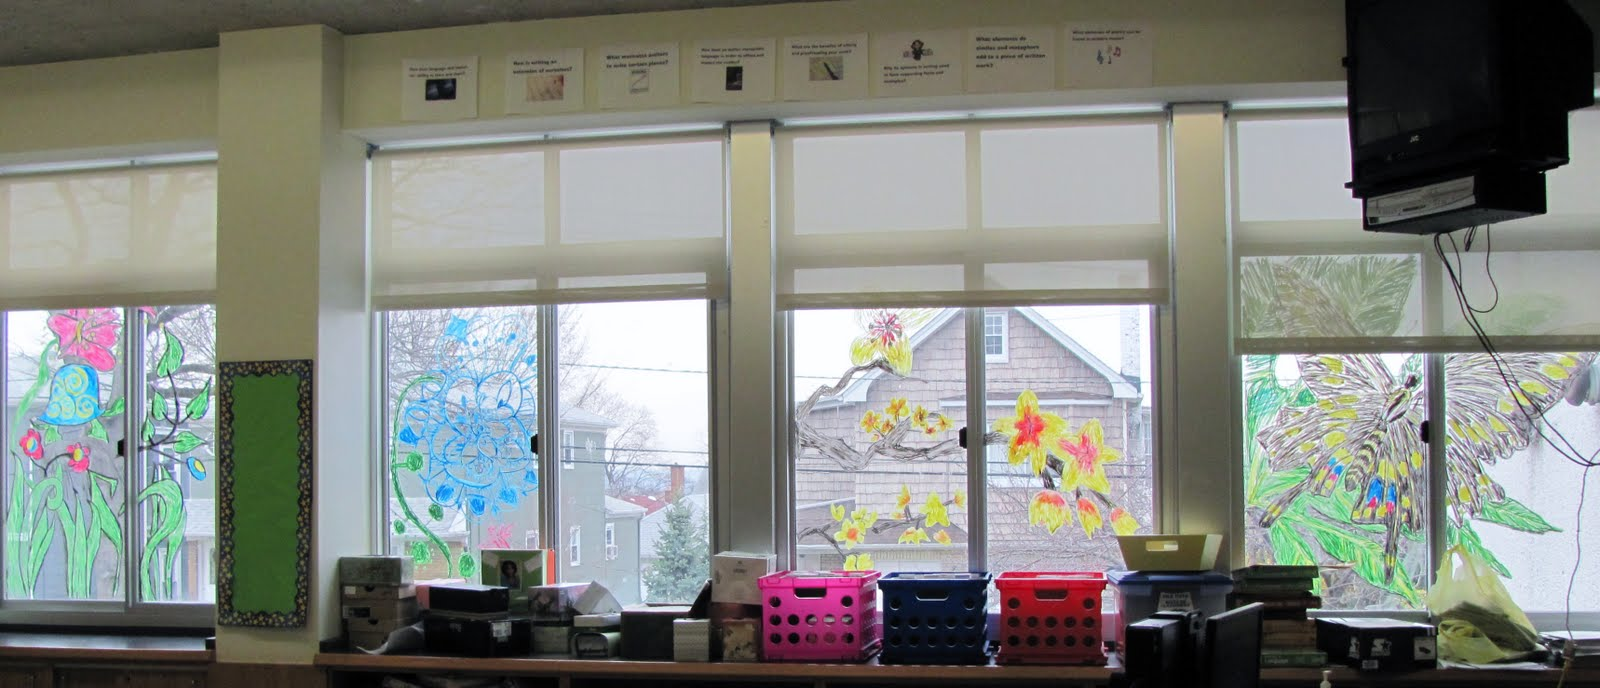 Classroom Window Ideas : How to decorate a classroom beautifully teaching tofu